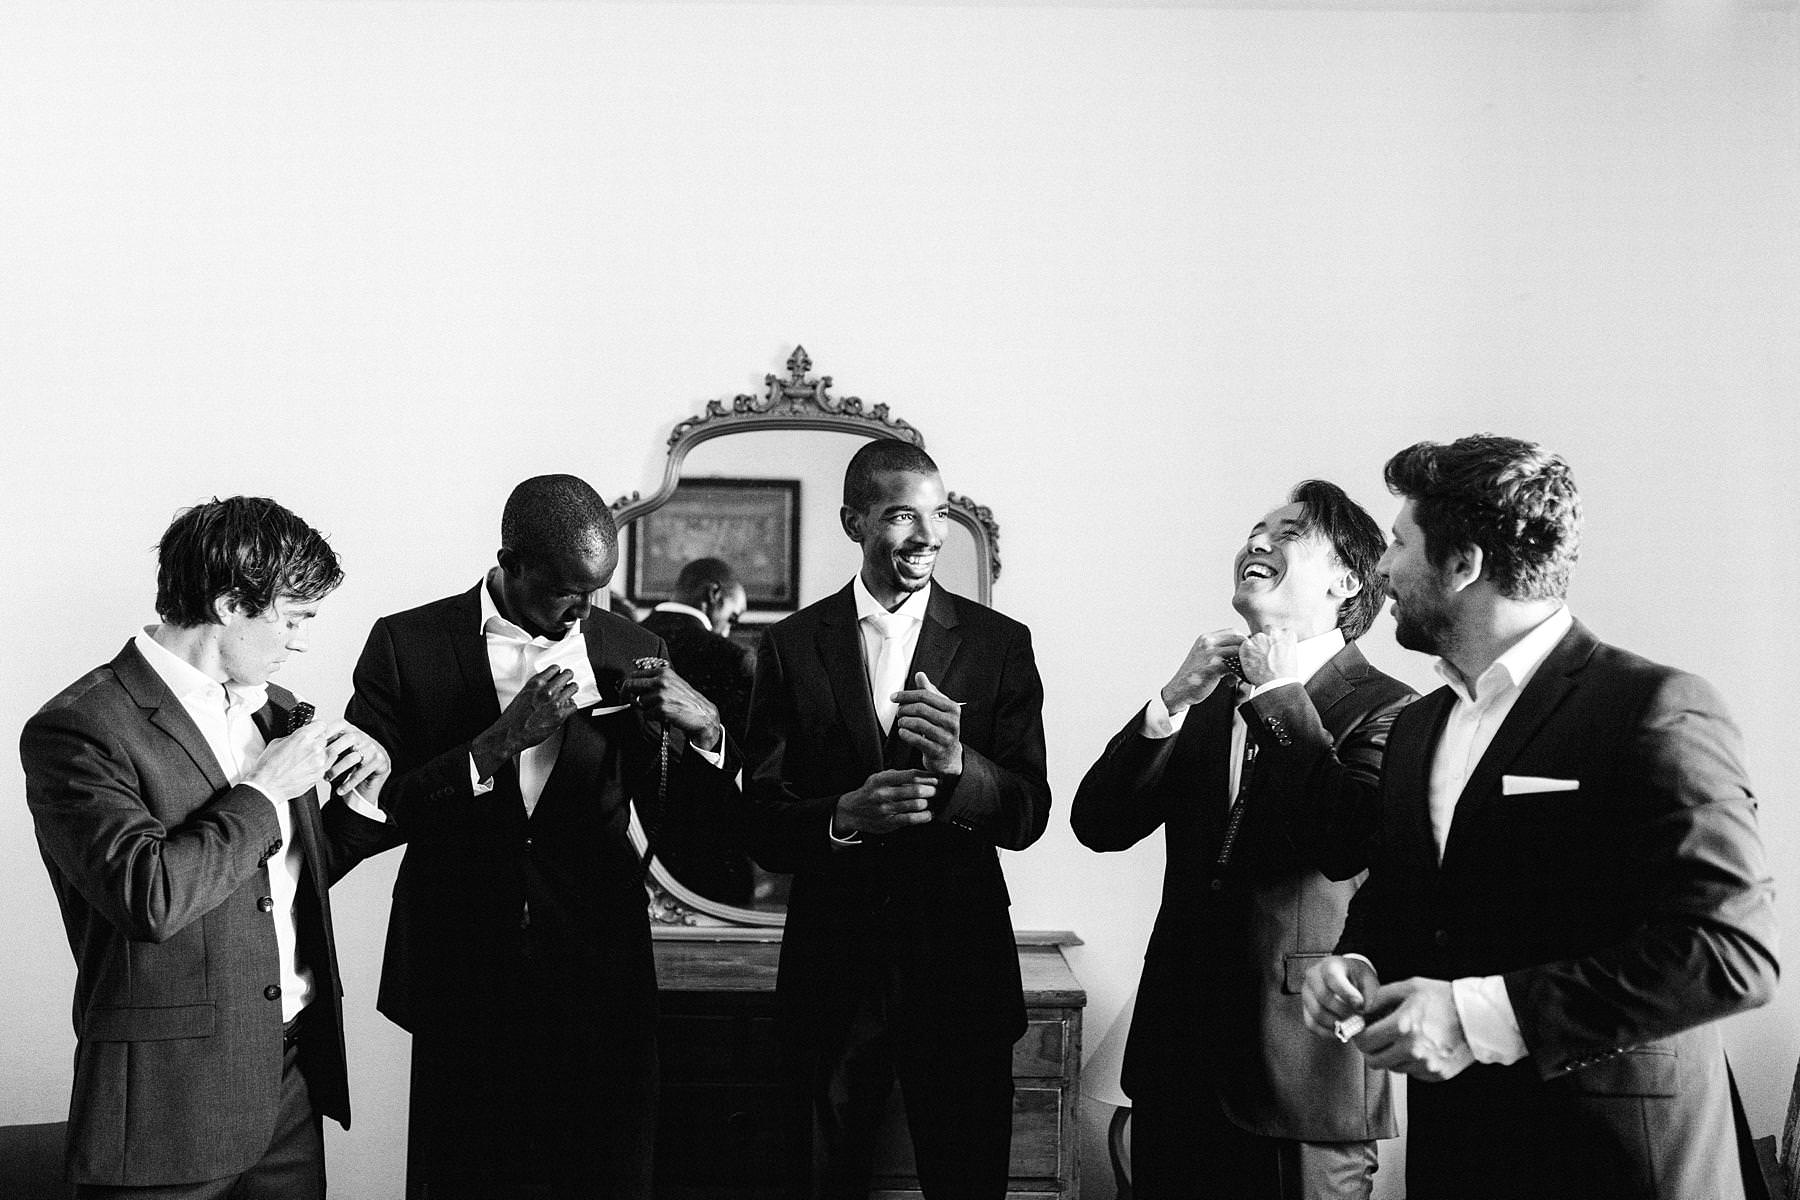 Groom Tanaka's getting ready with groomsmen at Montelucci Country Resort historic residence. Destination wedding in Tuscany between Chianti and Valdarno